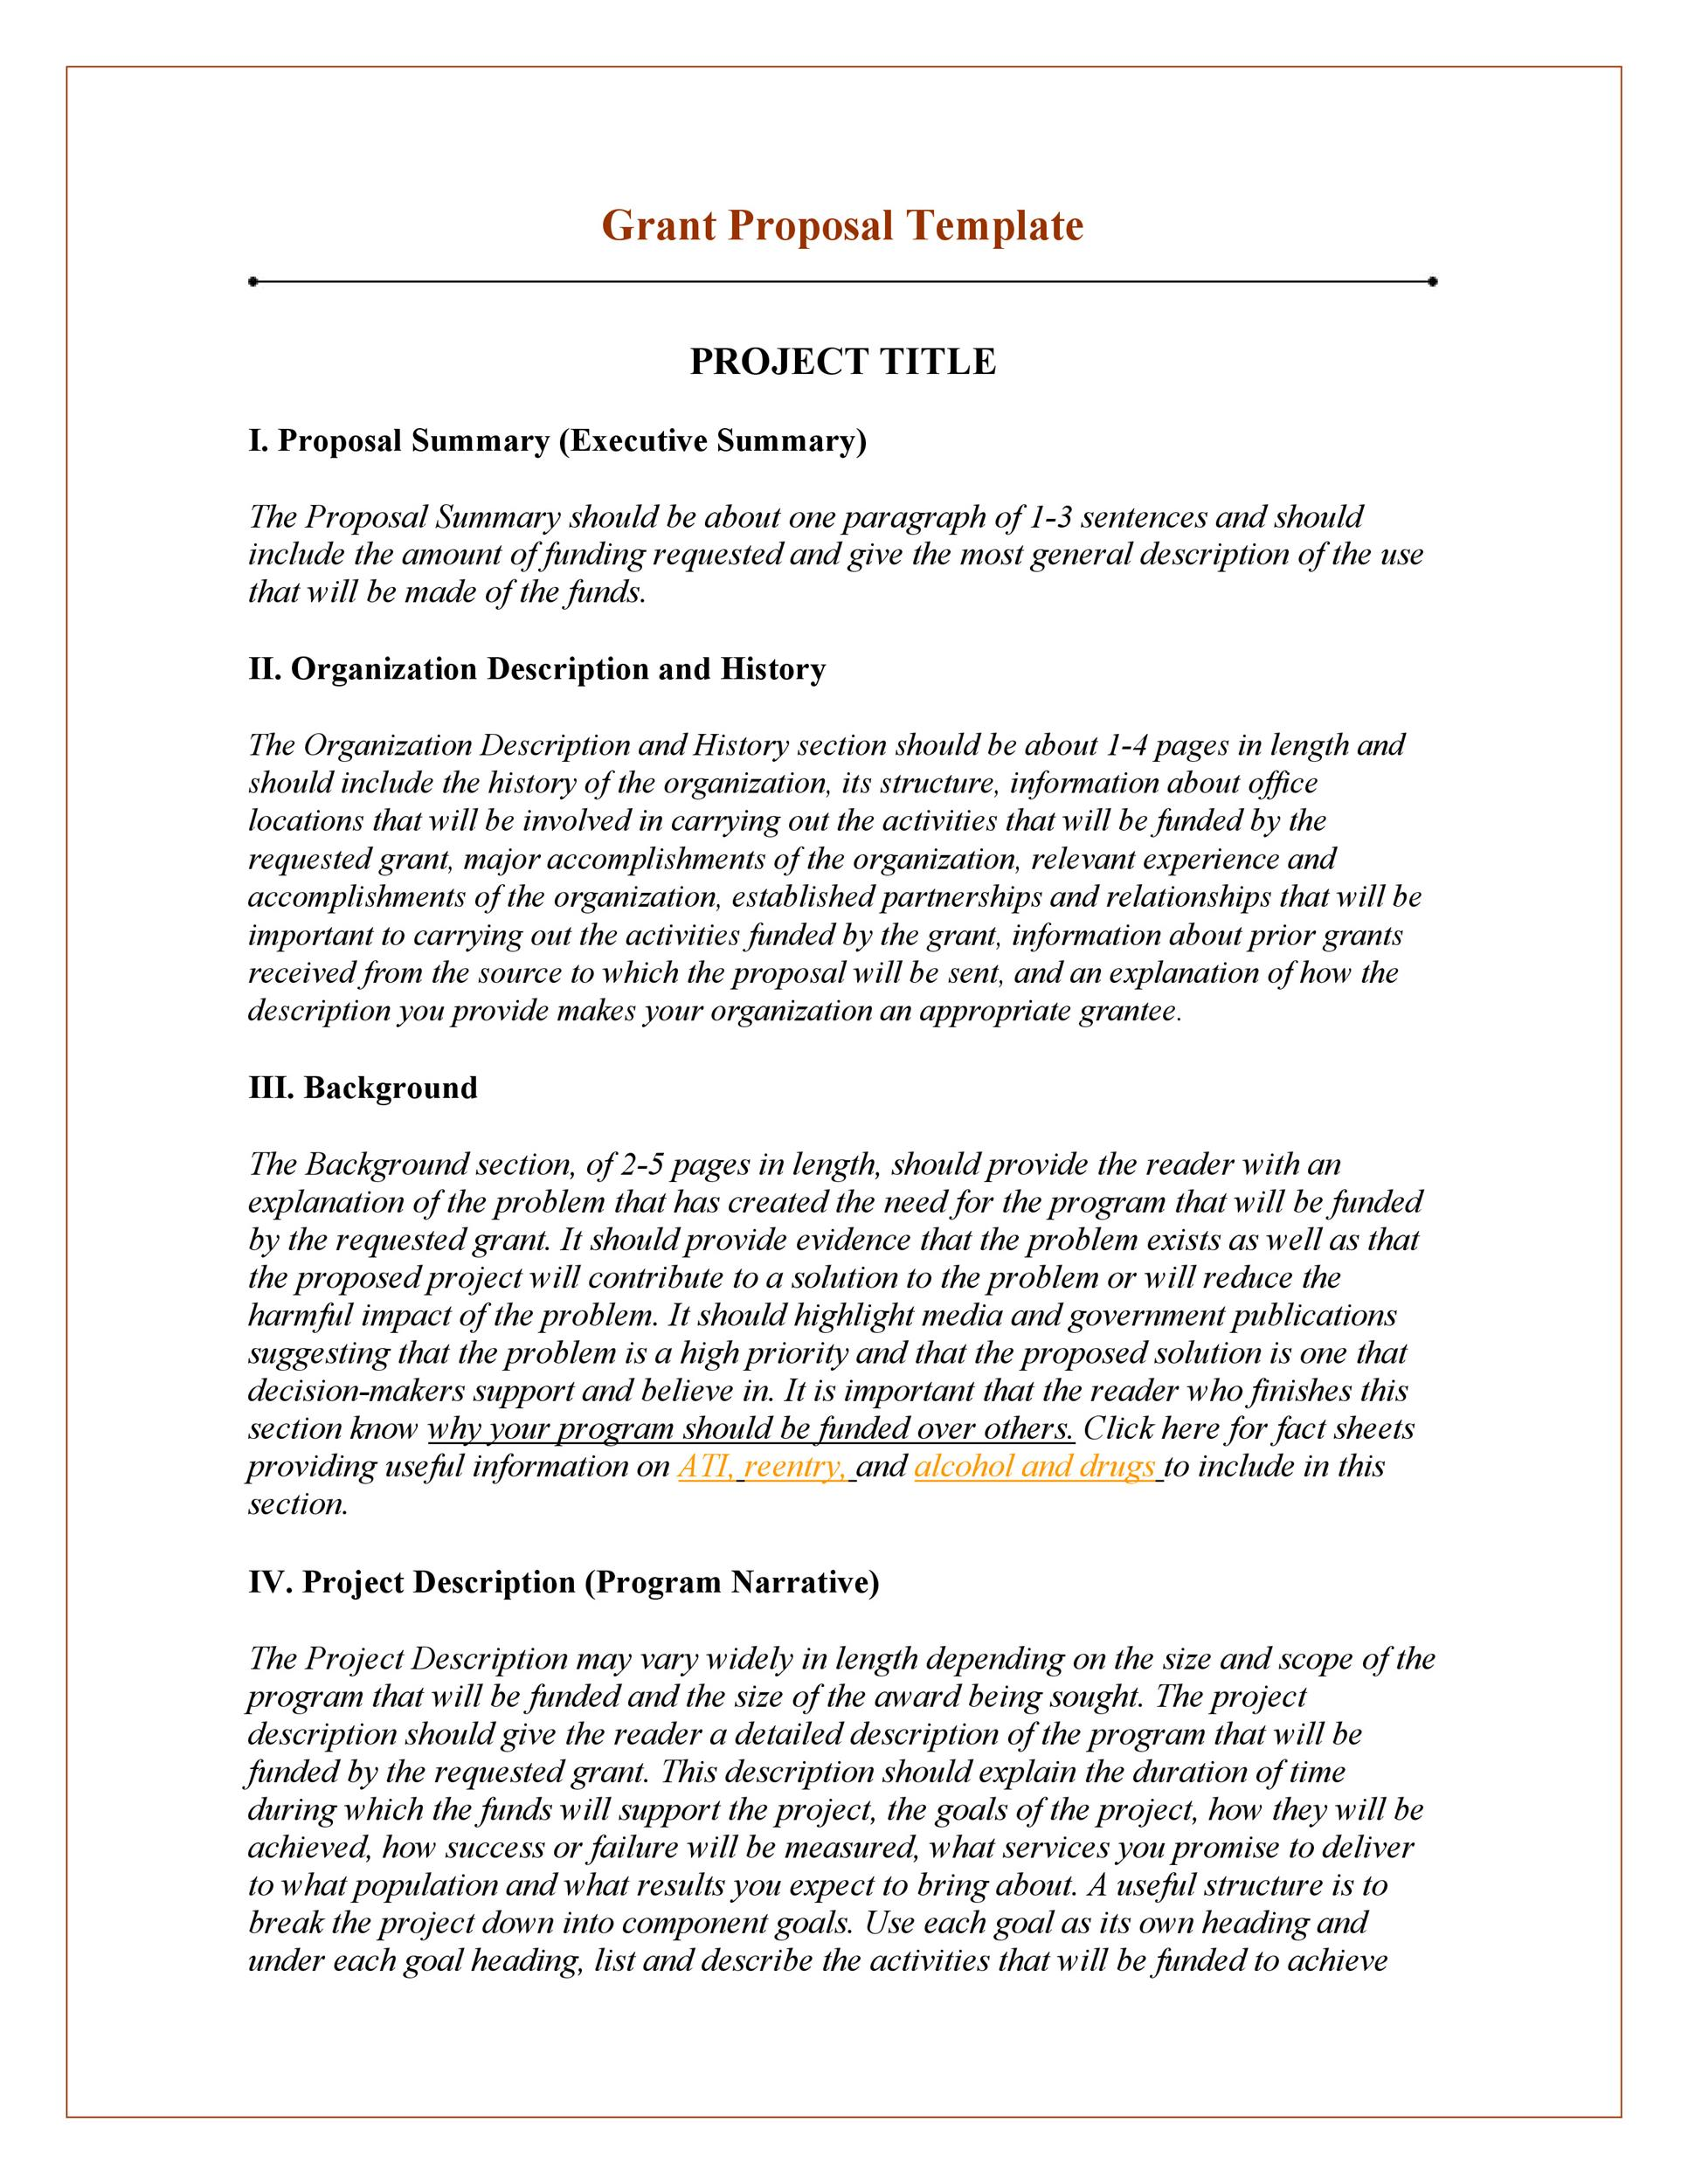 40 grant proposal templates nsf non profit research for Writing a proposal for funding template